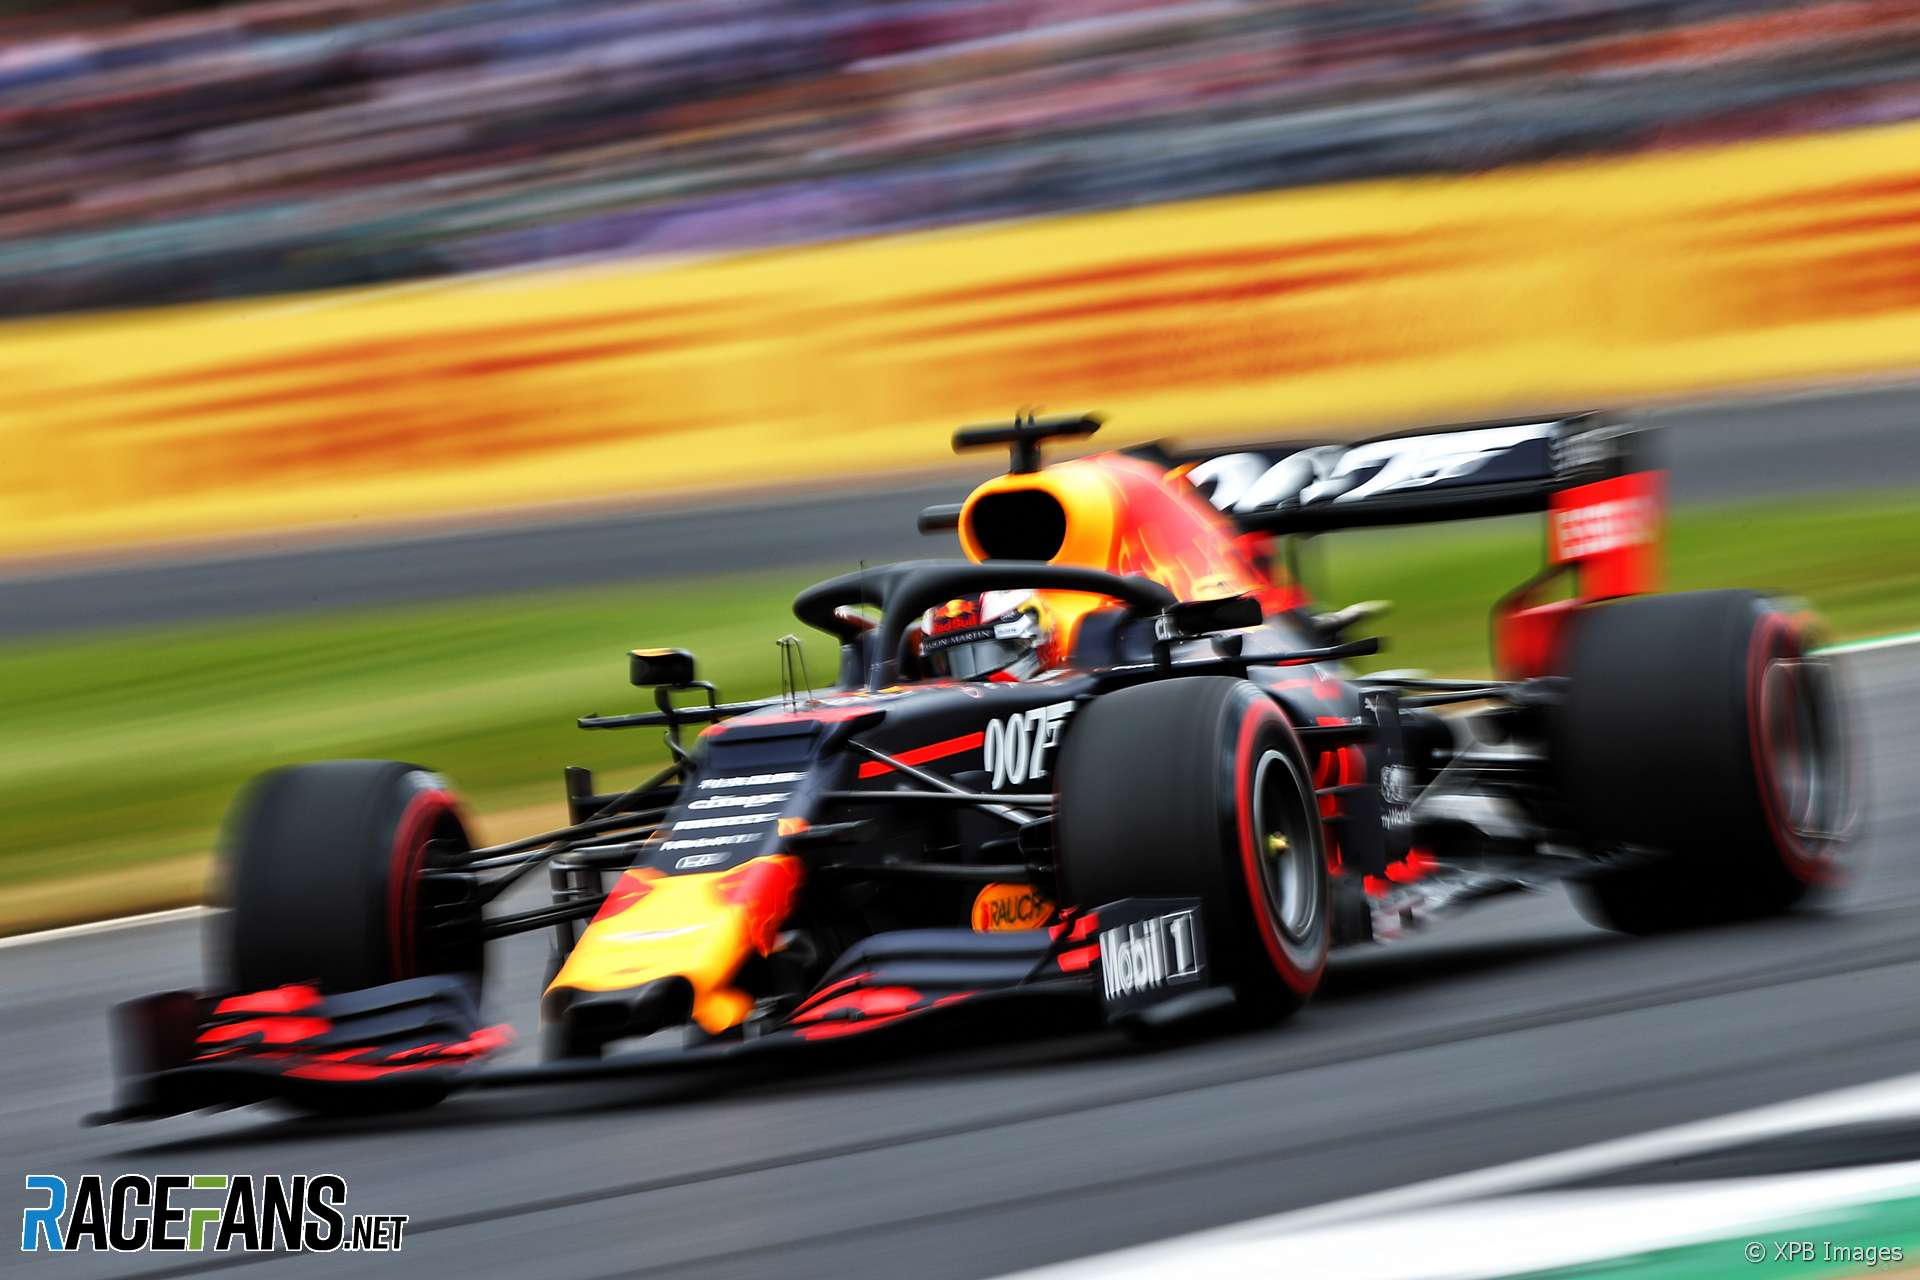 How Silverstone signalled a breakthrough at Red Bull